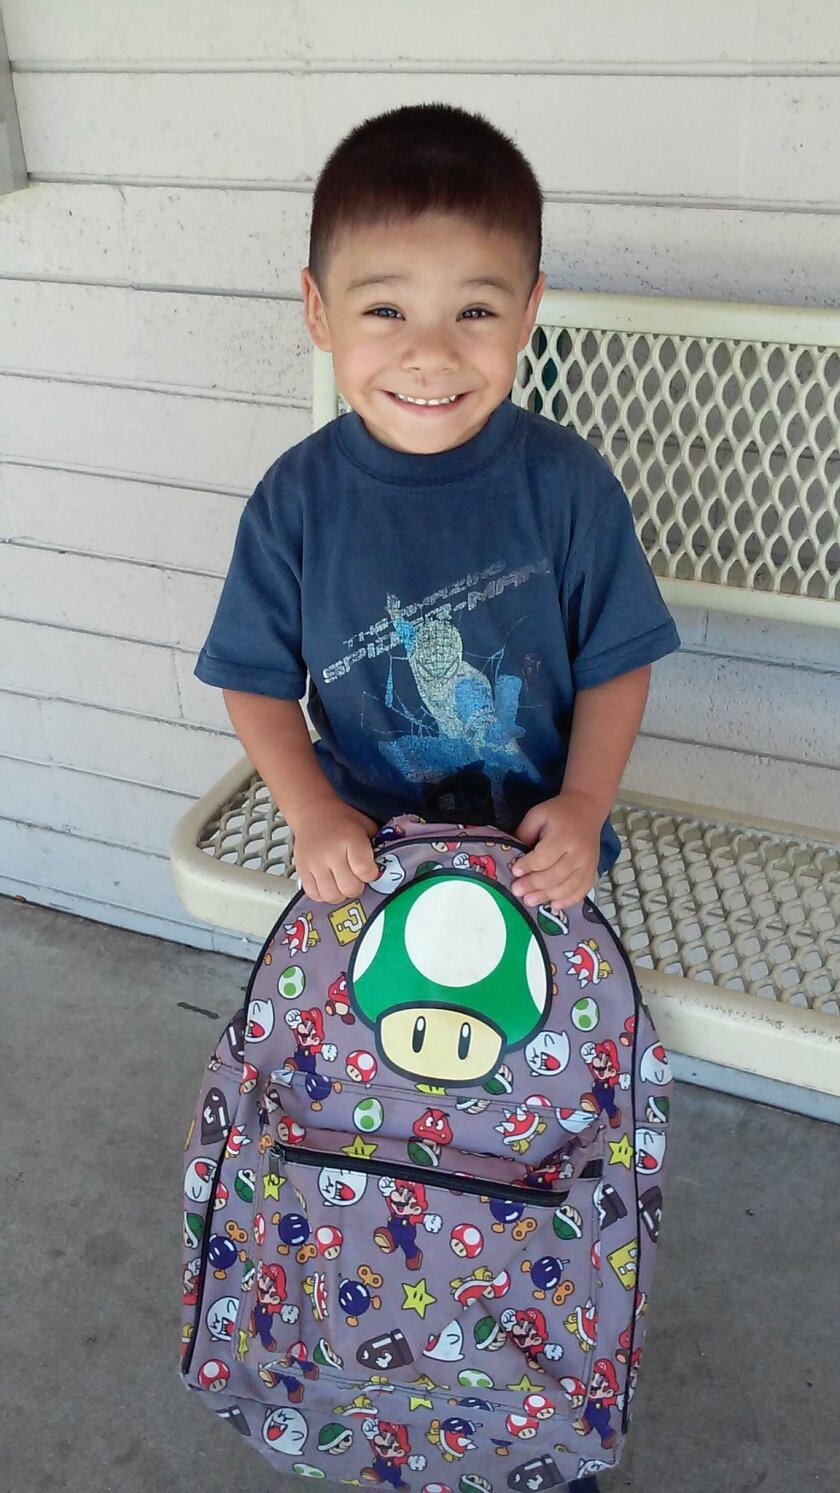 Daniel Munoz, 4, was shot and killed outside his grandmother's home in Highland, Calif.